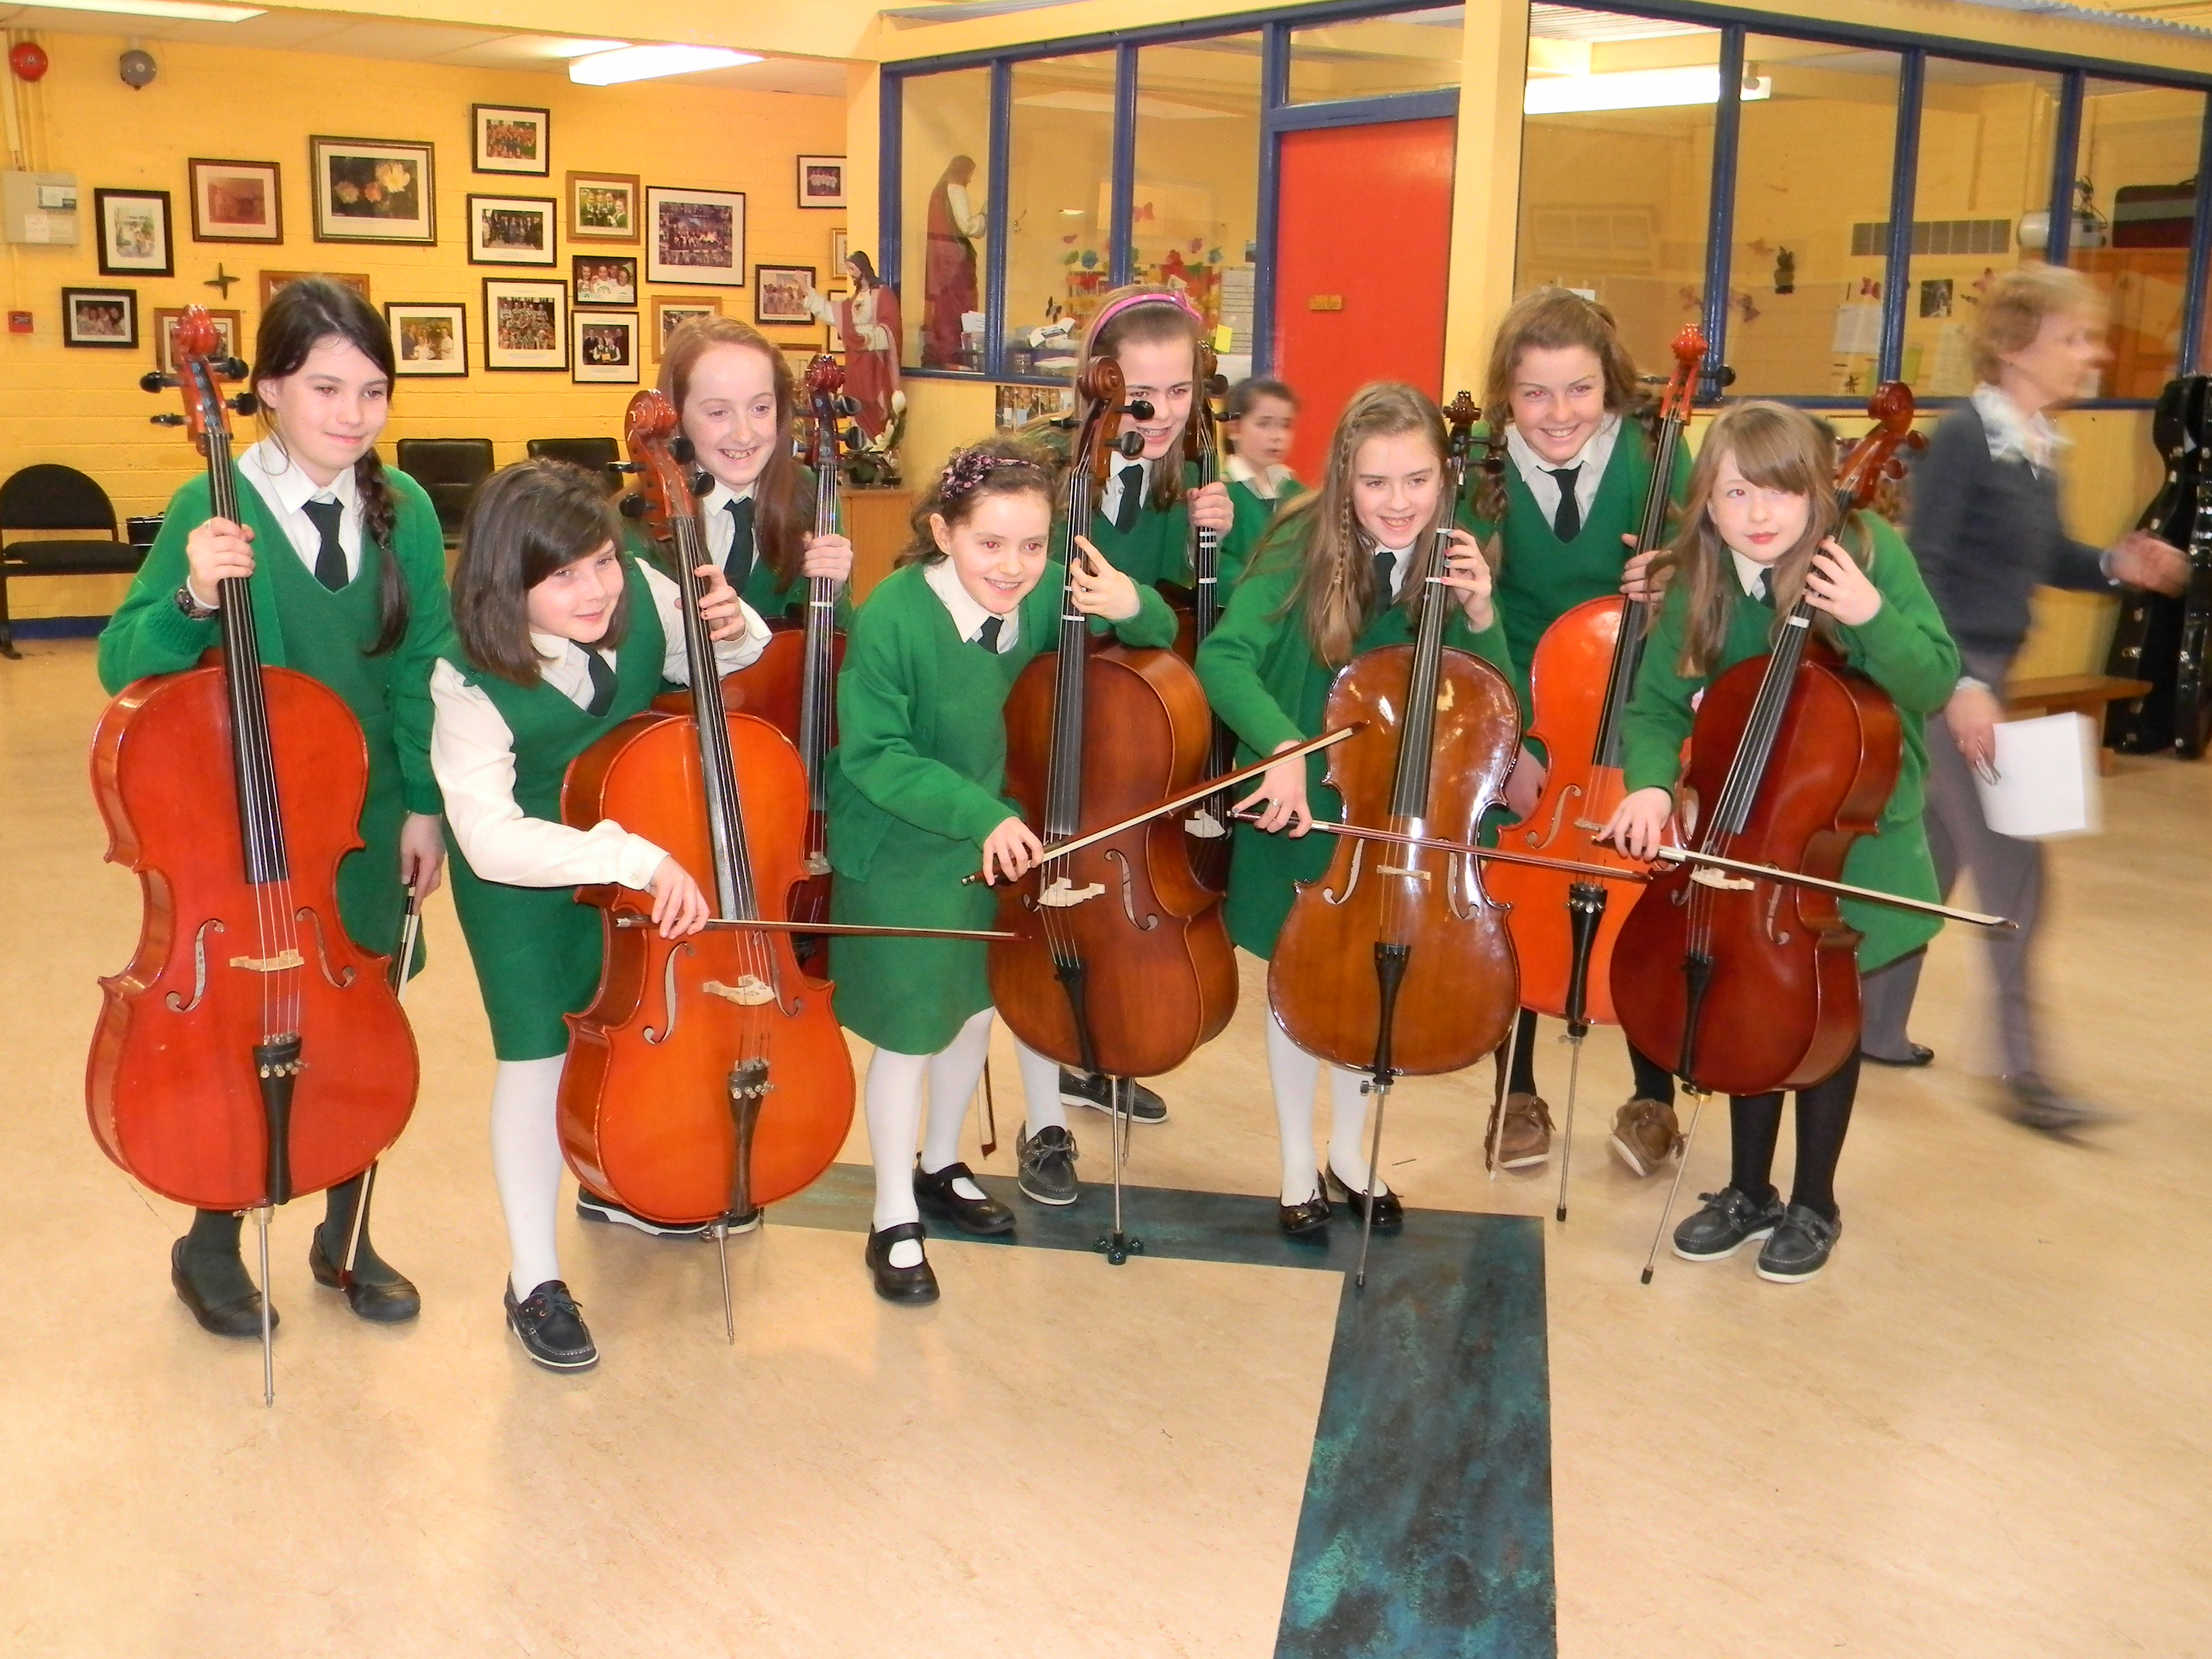 Cello players in the School Orchestra